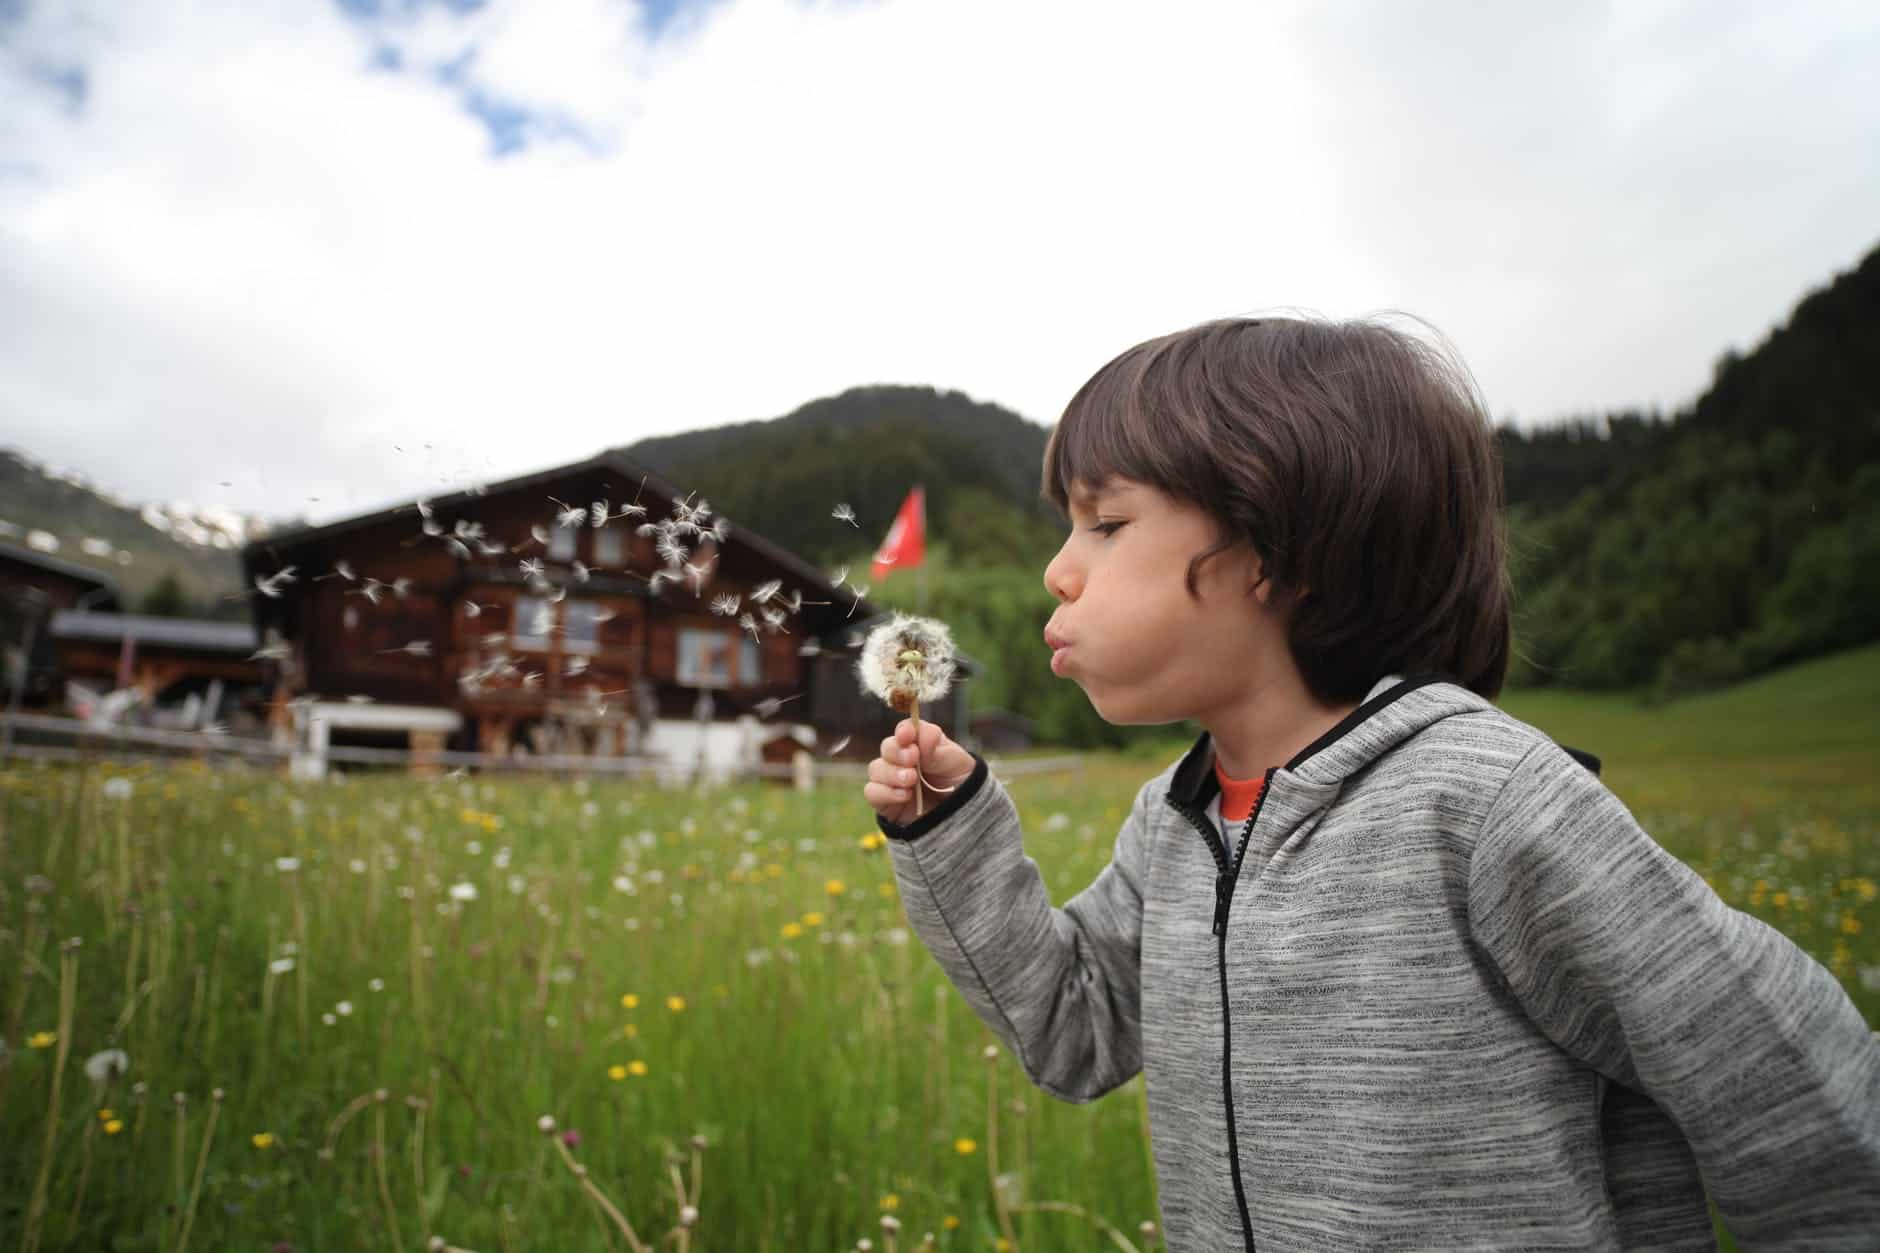 boy holding dandelion blowing near green grass field - encourage your child to explore